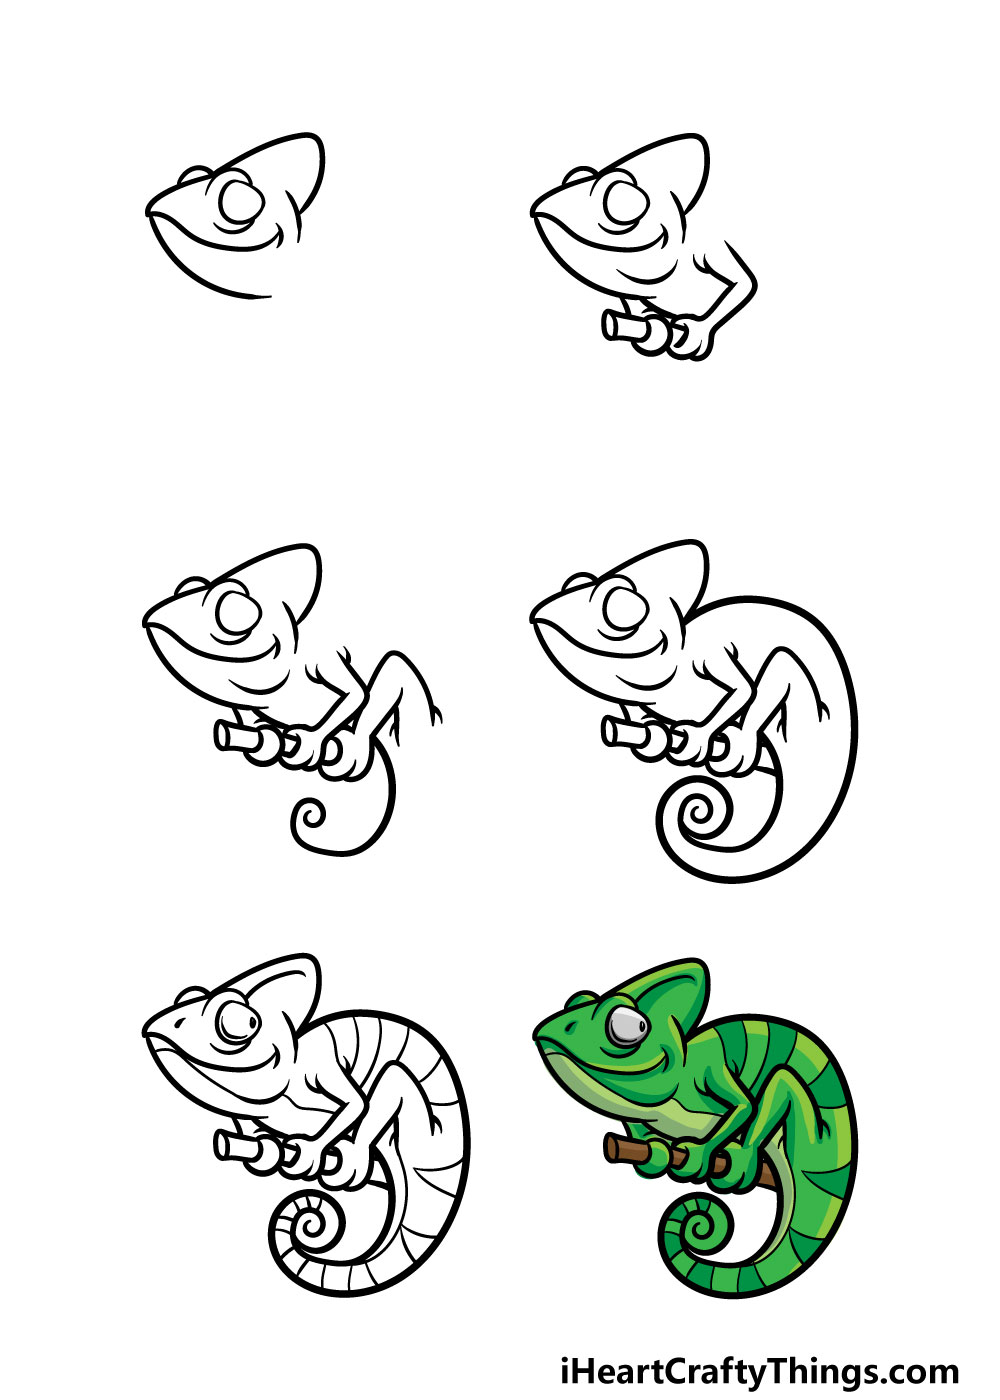 how to draw a chameleon in 6 steps